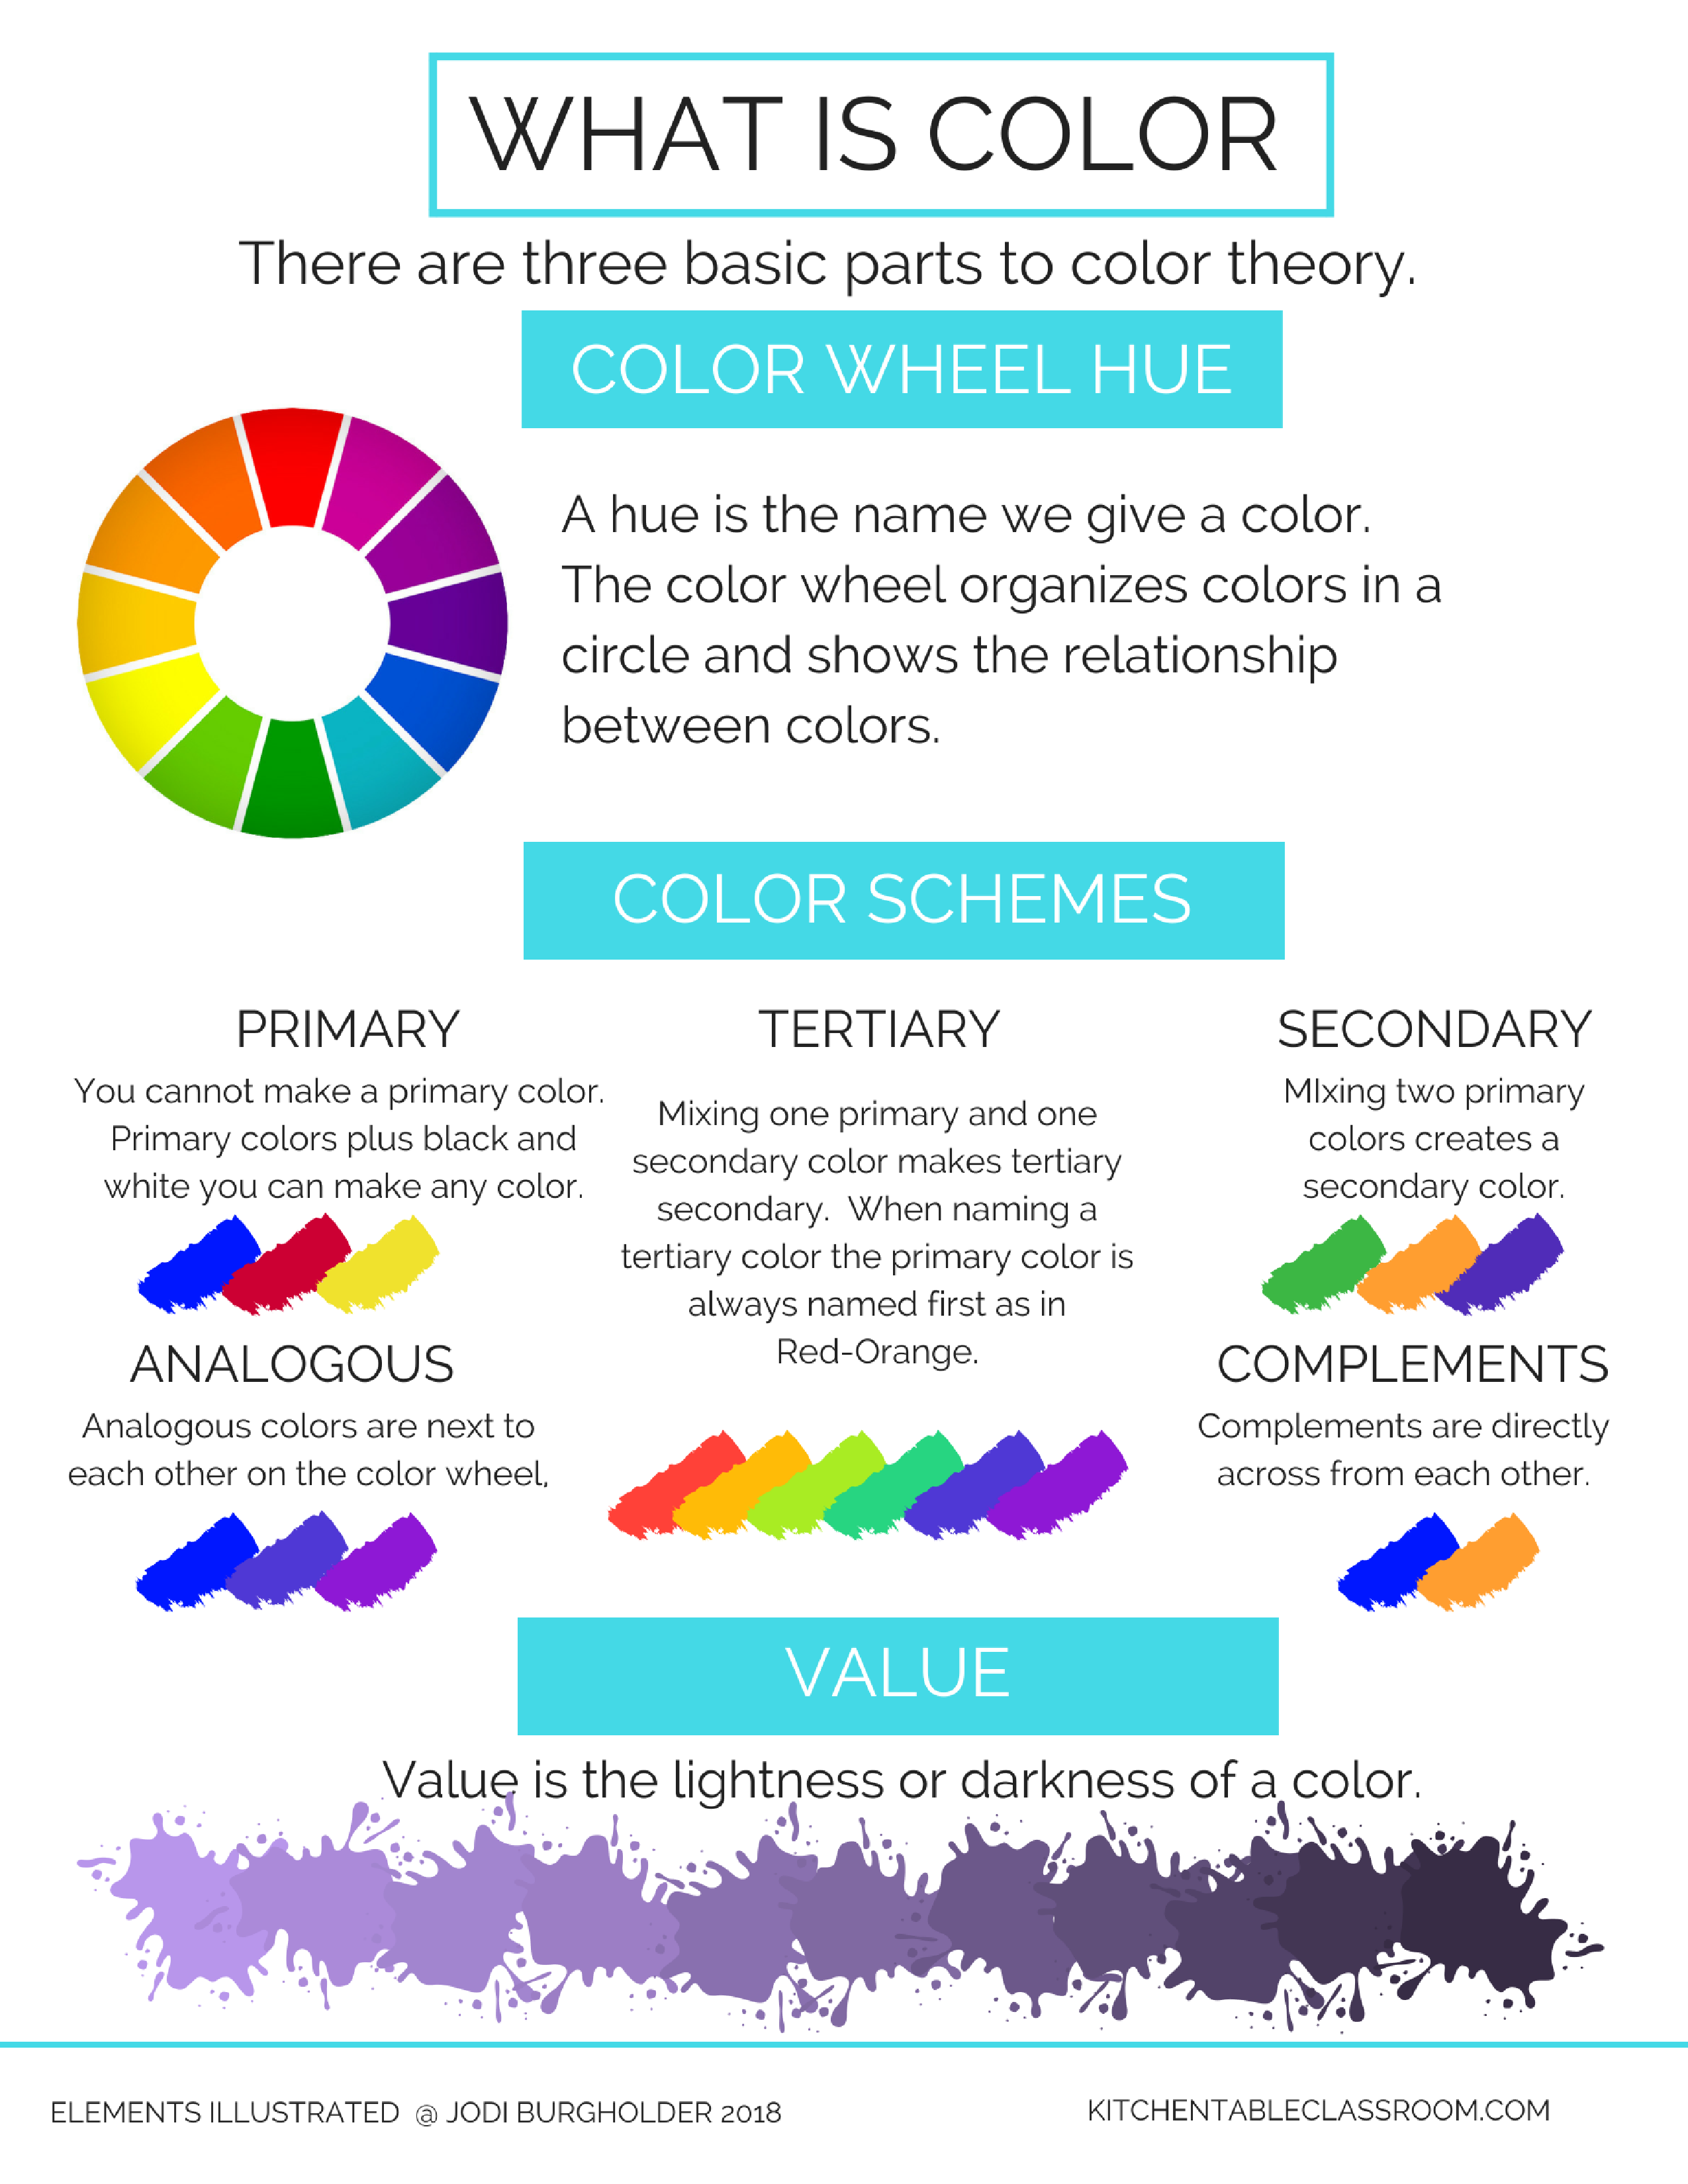 The Elements Illustrated Elements Of Art Posters And Digital Bundle The Kitchen Table Classroom Principles Of Art Elements Of Art Color Elements Of Art [ 3300 x 2550 Pixel ]